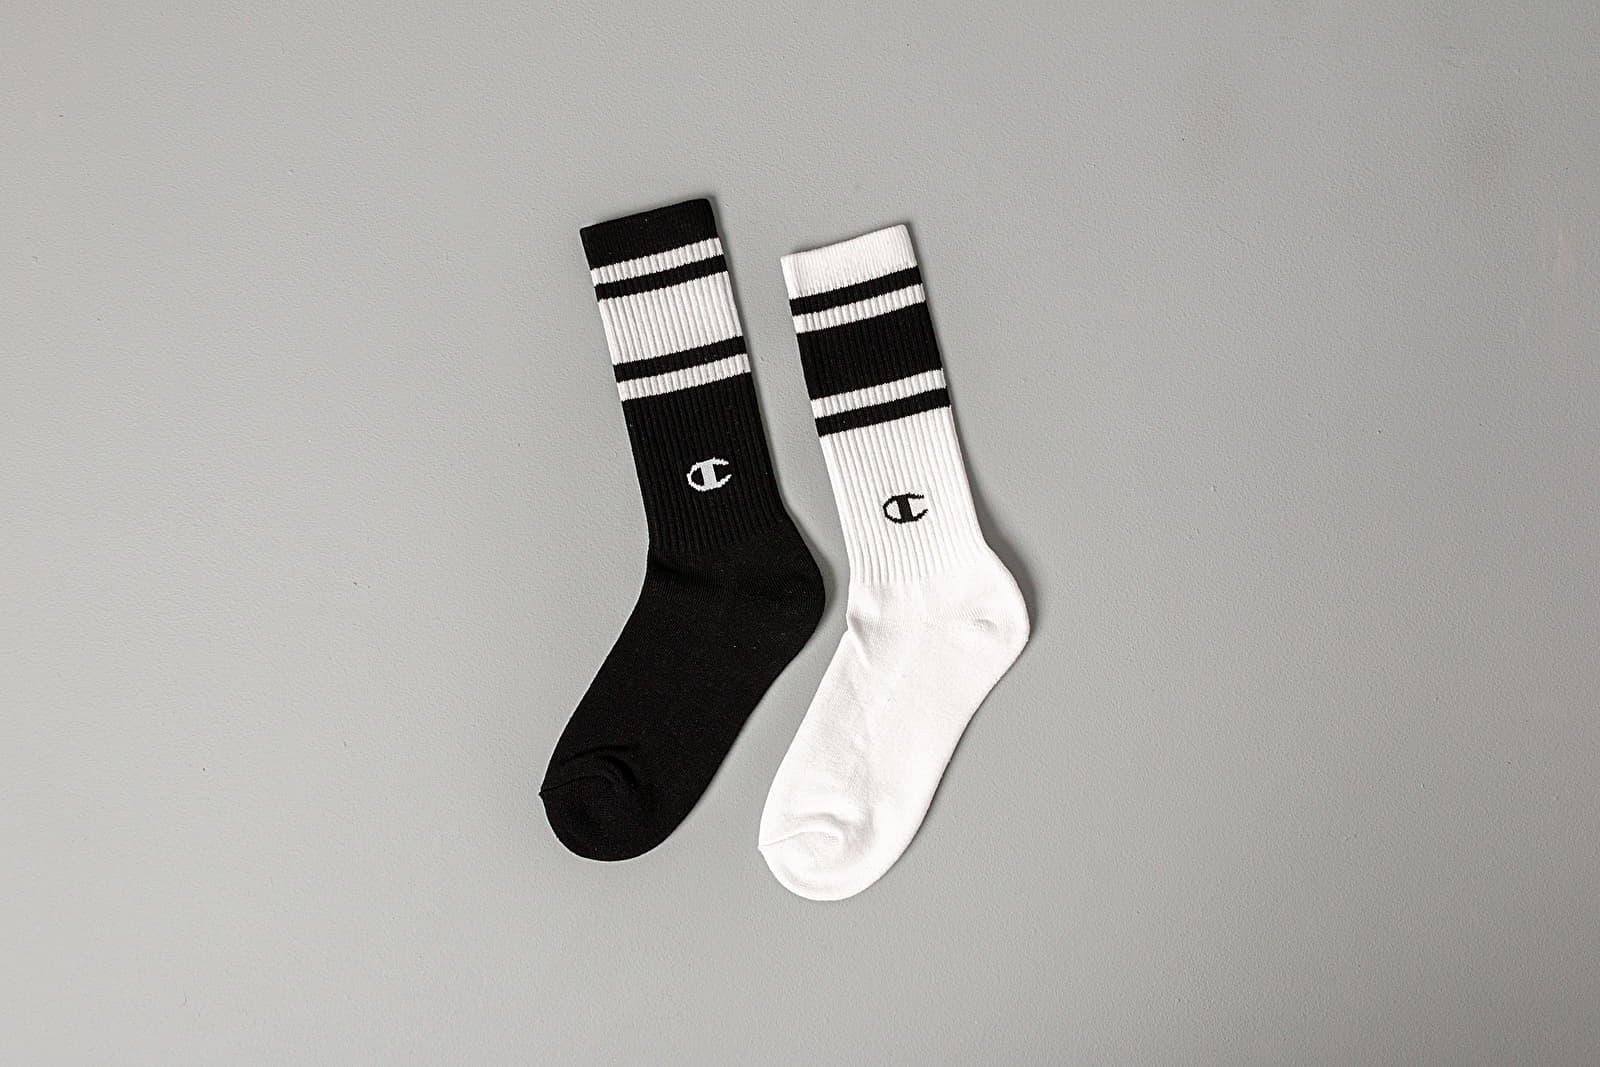 Calzetti Champion Crew 2Pack Socks Black/ White